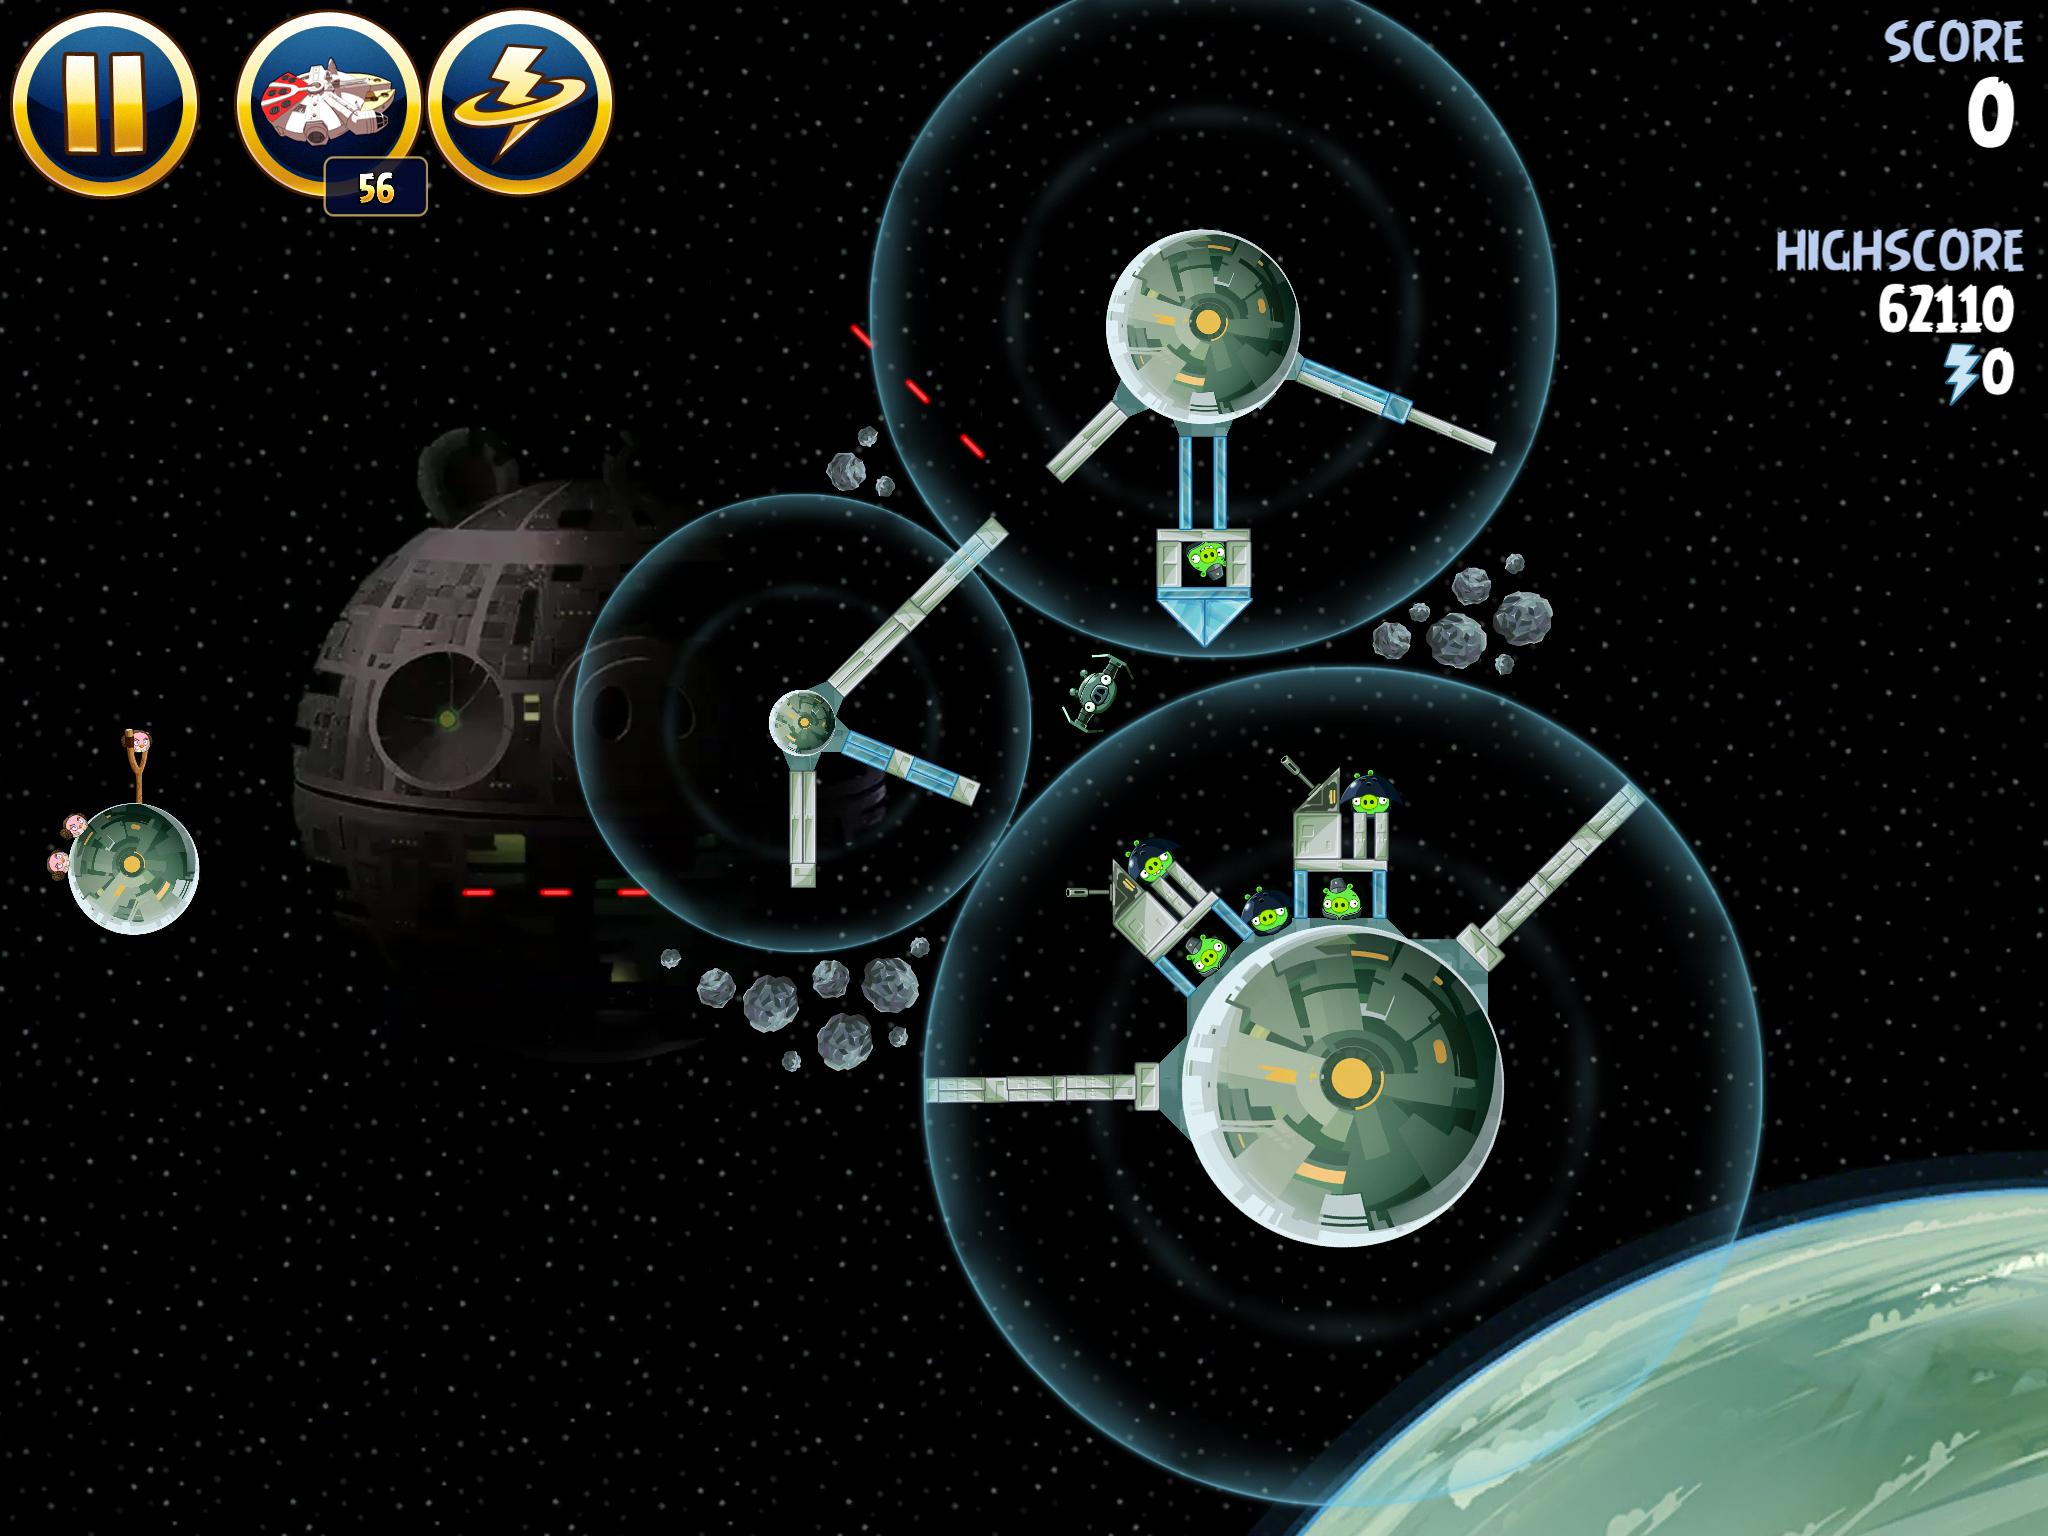 Death Star 2 6-9 (Angry Birds Star Wars)